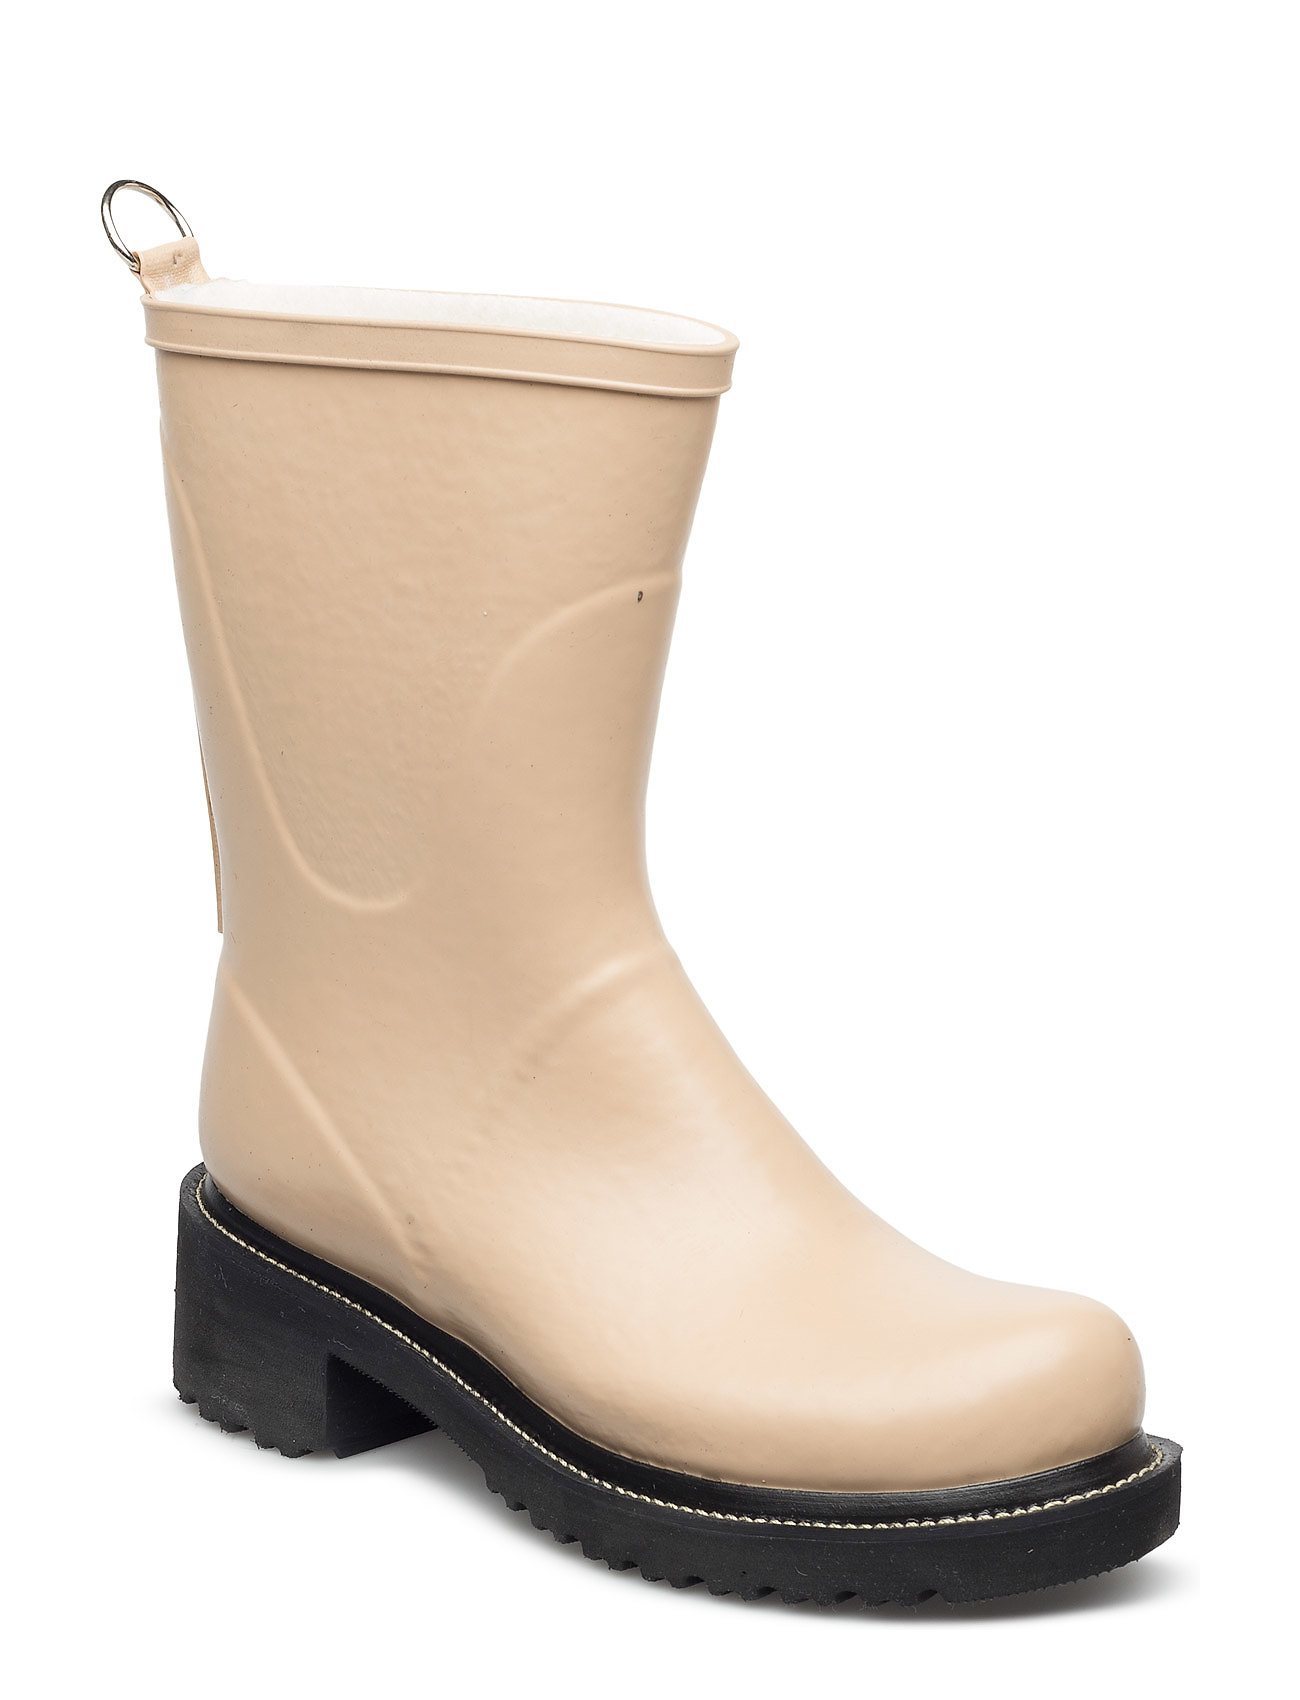 Ilse Jacobsen 3/4 RUBBER BOOT - 210 CAMEL